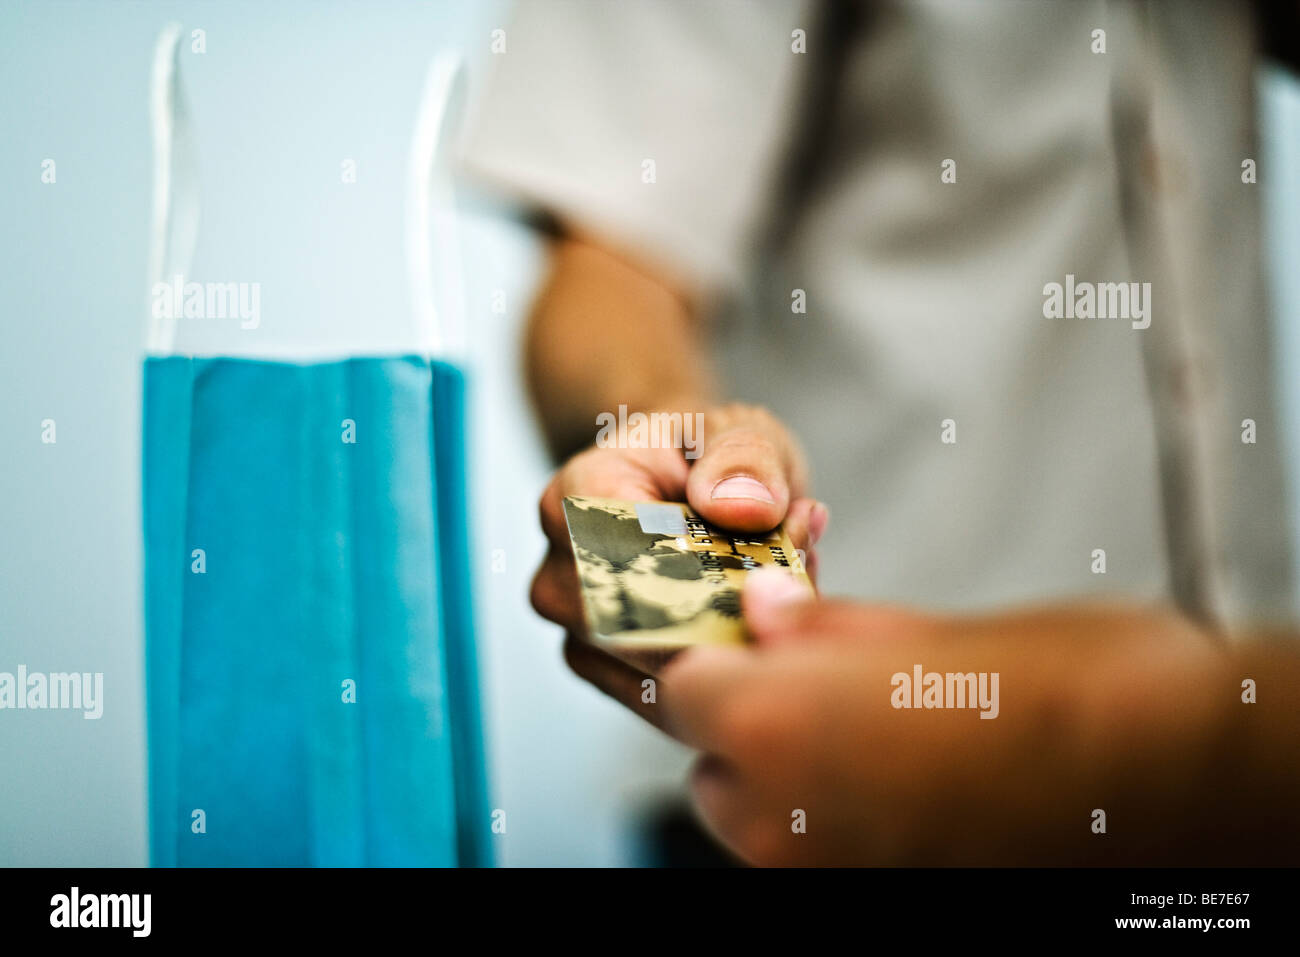 Man paying for purchase with credit card, cropped, close-up - Stock Image